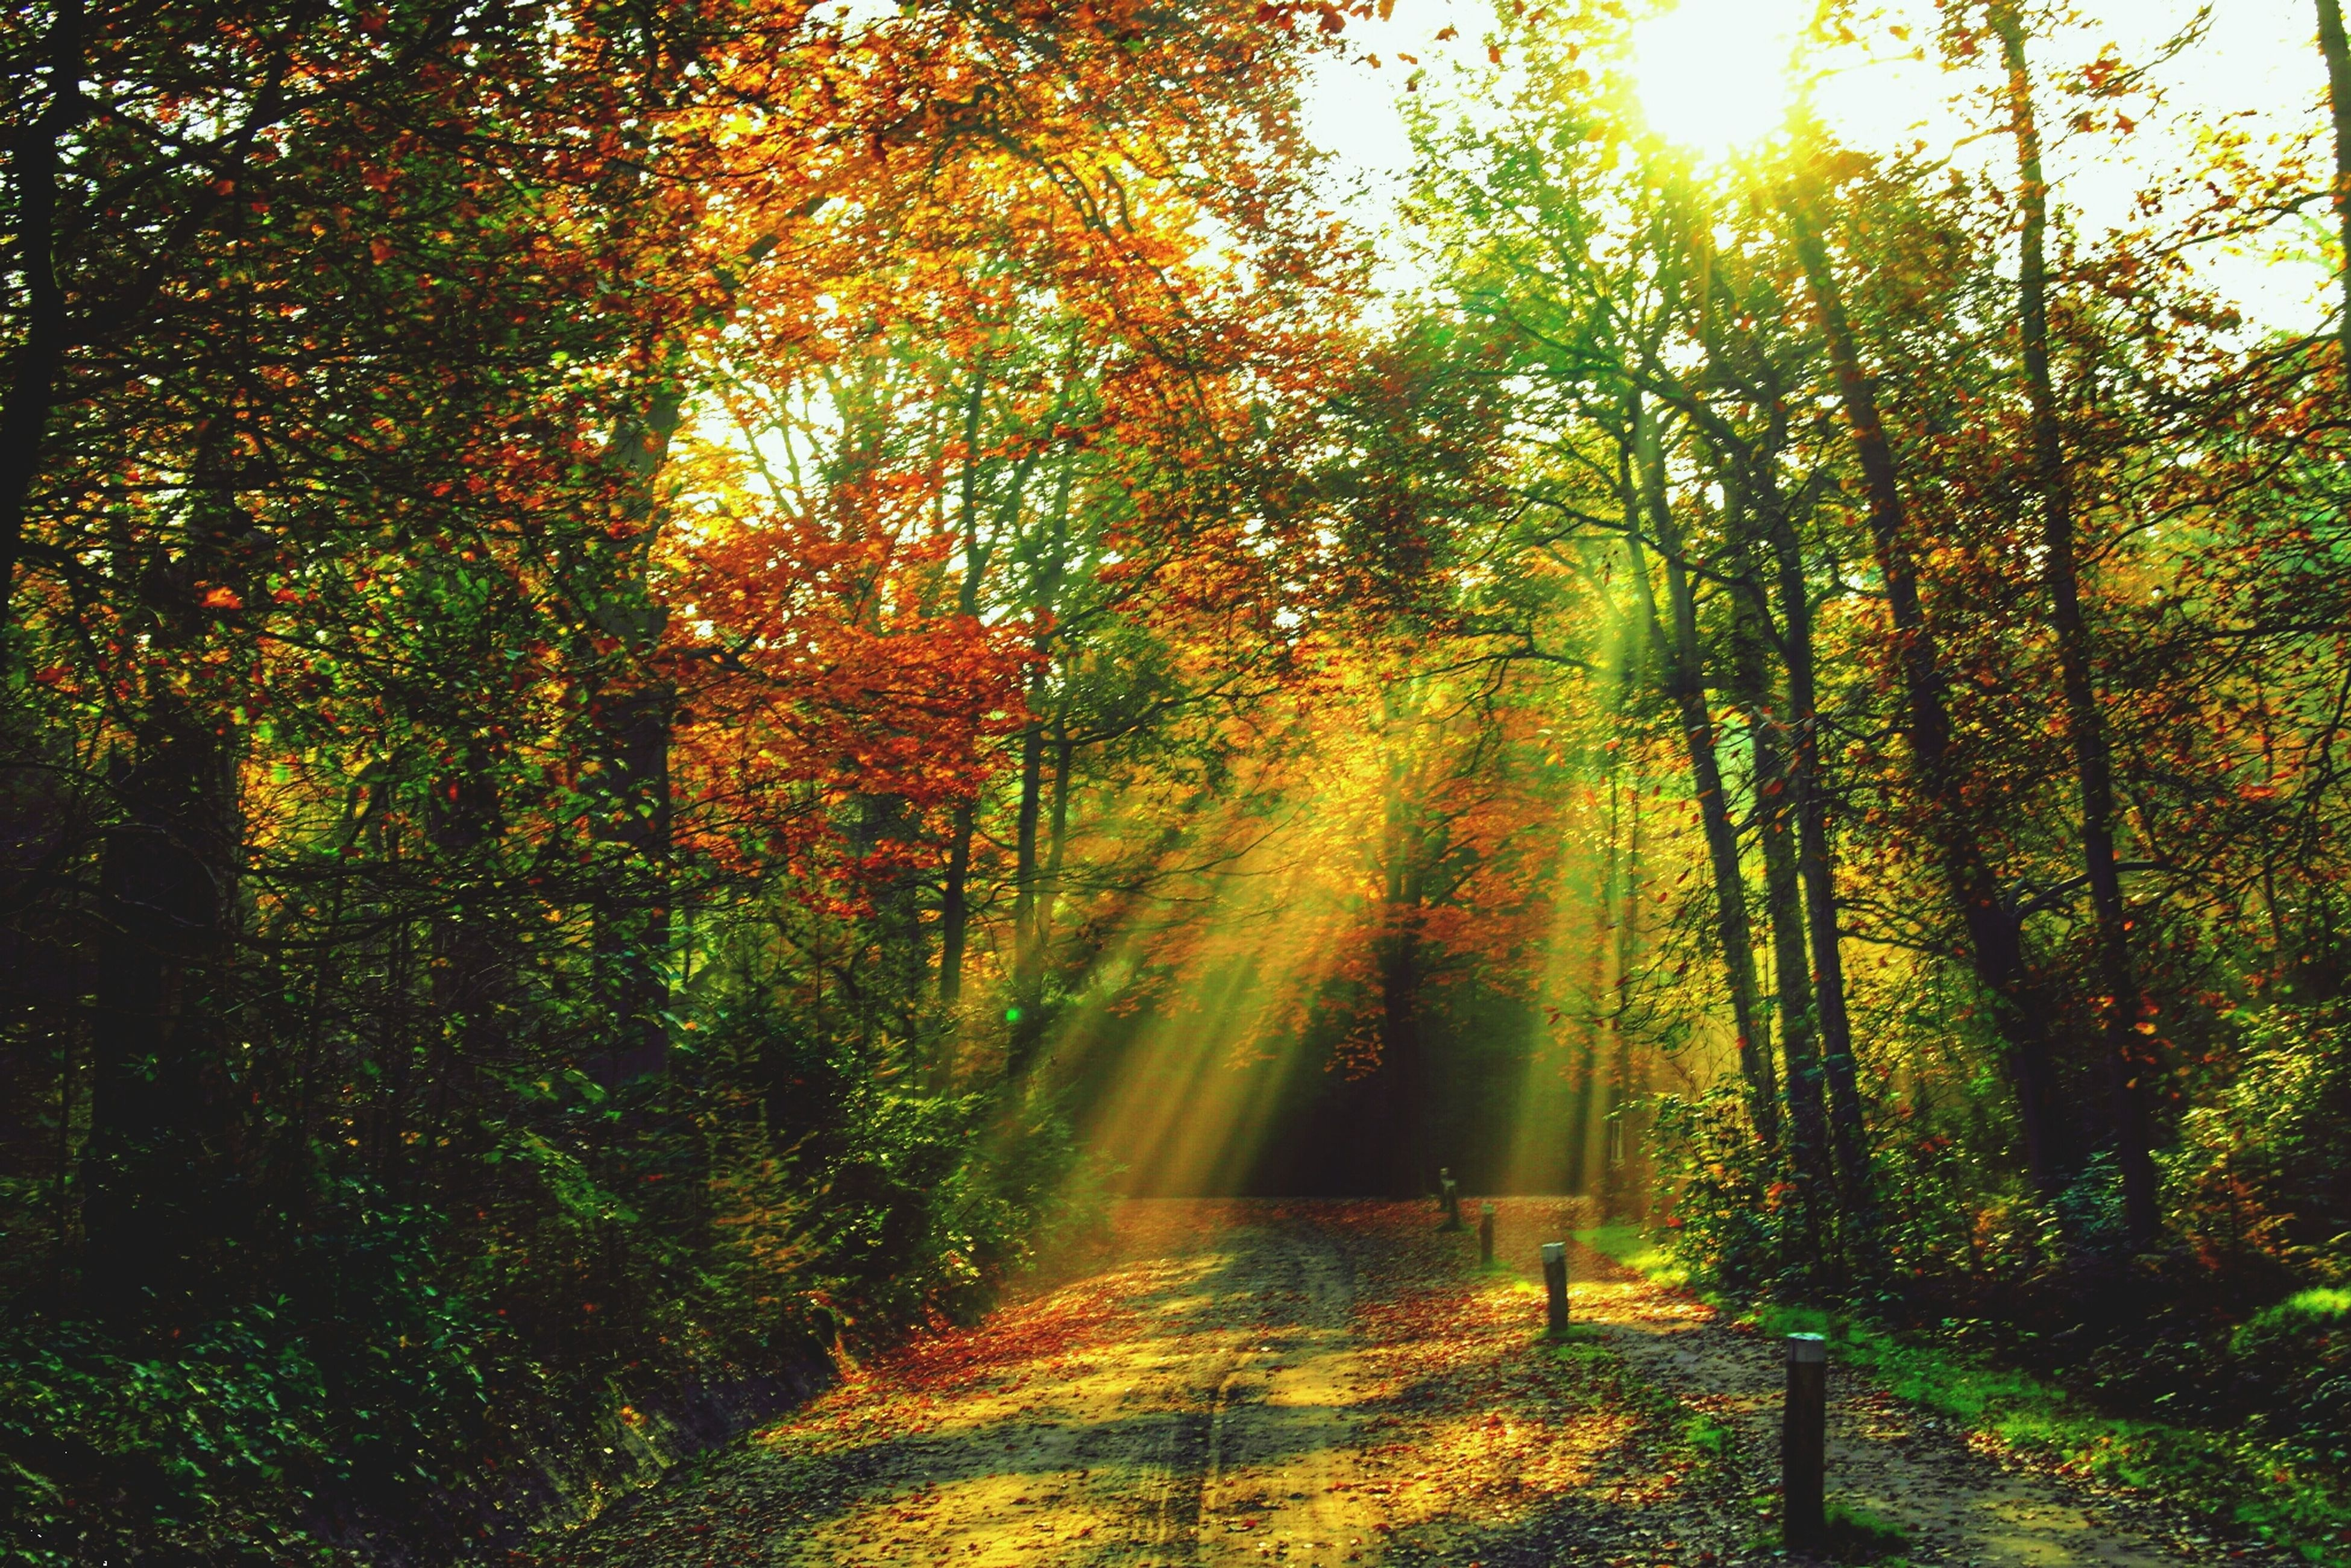 tree, tranquility, growth, beauty in nature, autumn, nature, tranquil scene, forest, scenics, change, sunlight, branch, orange color, season, idyllic, sunbeam, lush foliage, green color, outdoors, non-urban scene